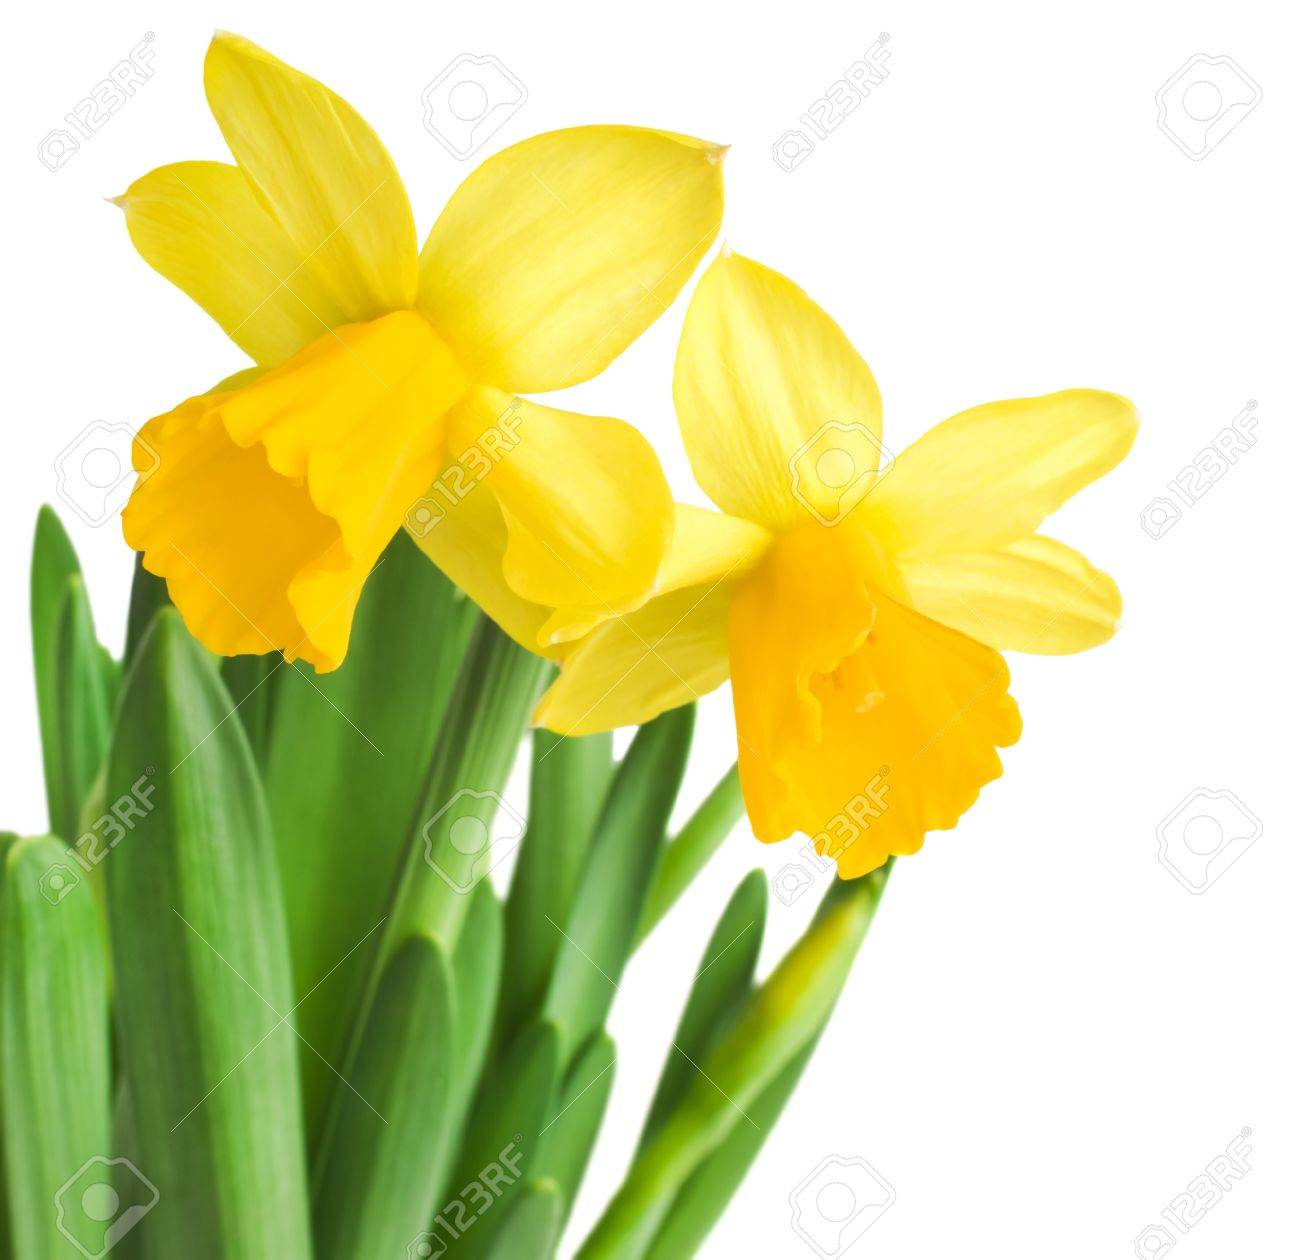 daffodils in green grass over white - 18409824